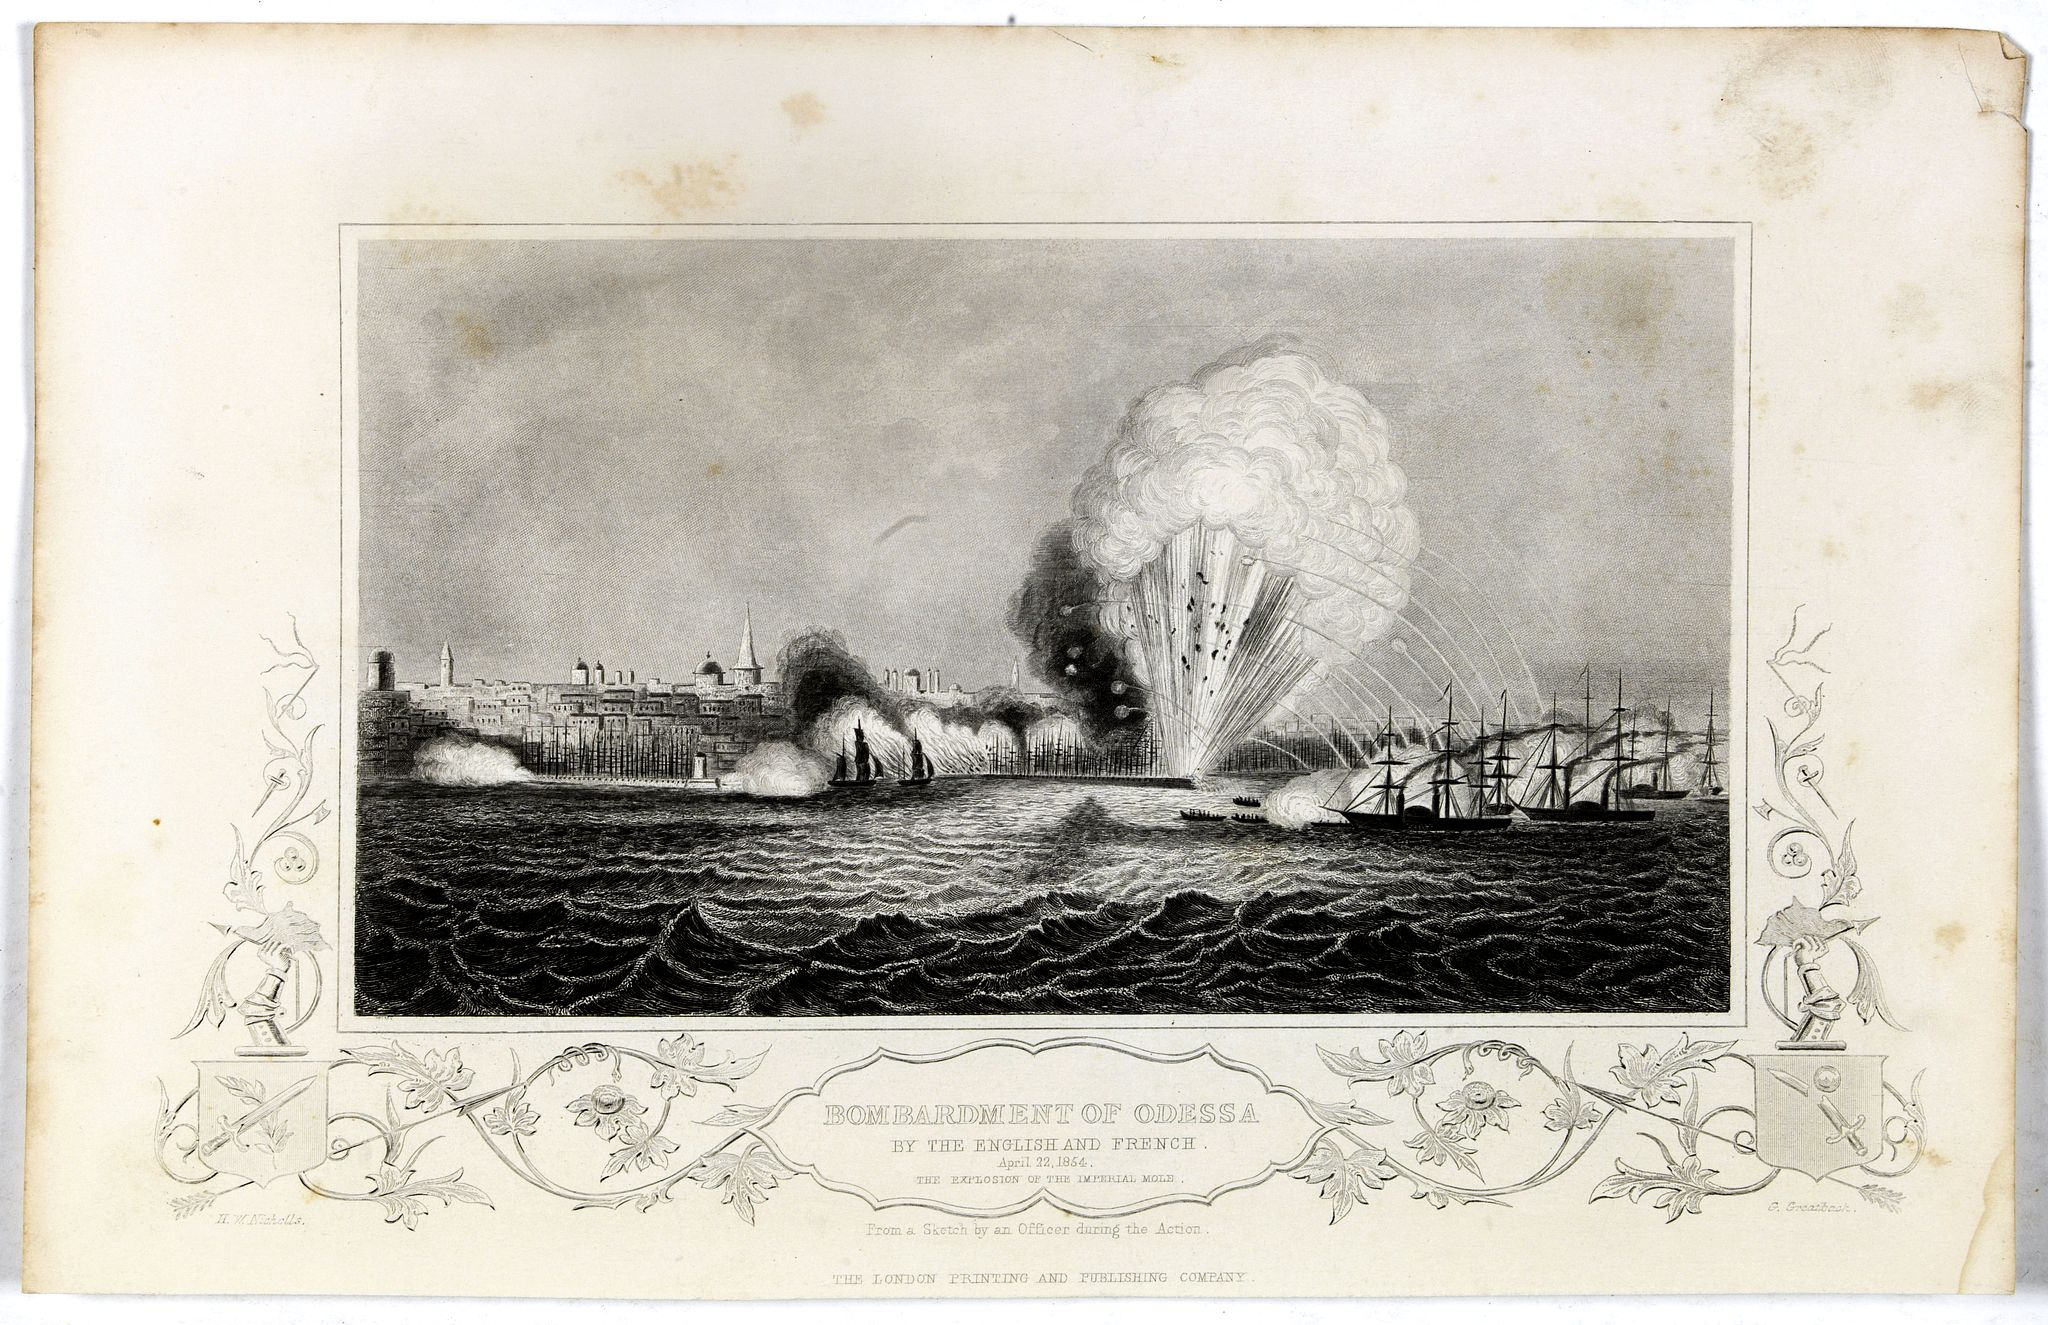 THE LONDON PRINTING AND PUBLISHING COMPANY,  Bombardment of Odessa by the English and French April 22 1854, explosion on the imperial mole . . ., antique map, old maps